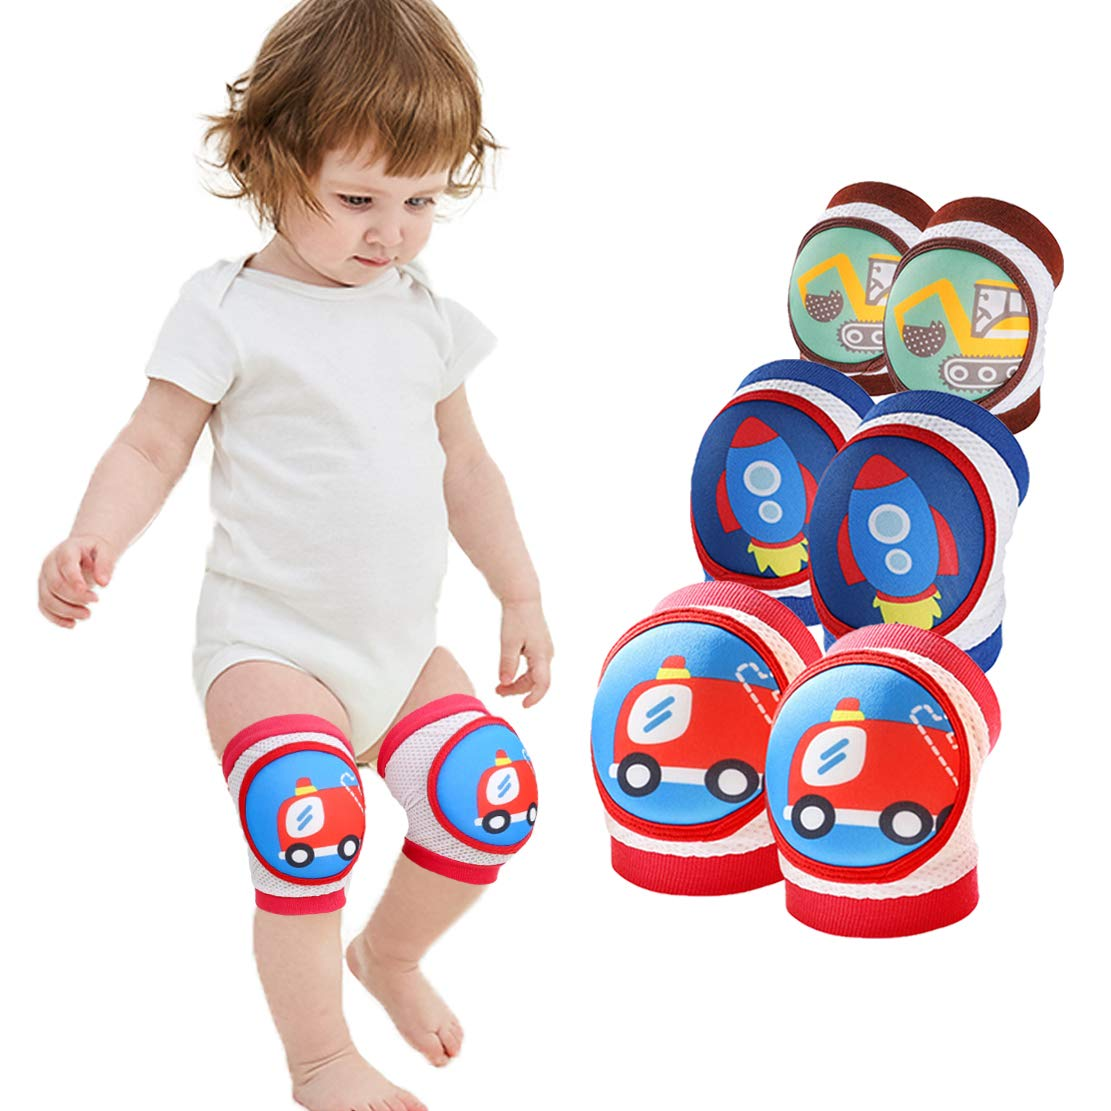 Baby Knee Pads for Crawling Knee Protector for Baby Toddler Anti Slip Knee Pads for Crawling and Safety (3 Pack (Rocket+Digger+Fire Engine)) by Organic Baby Fun Land